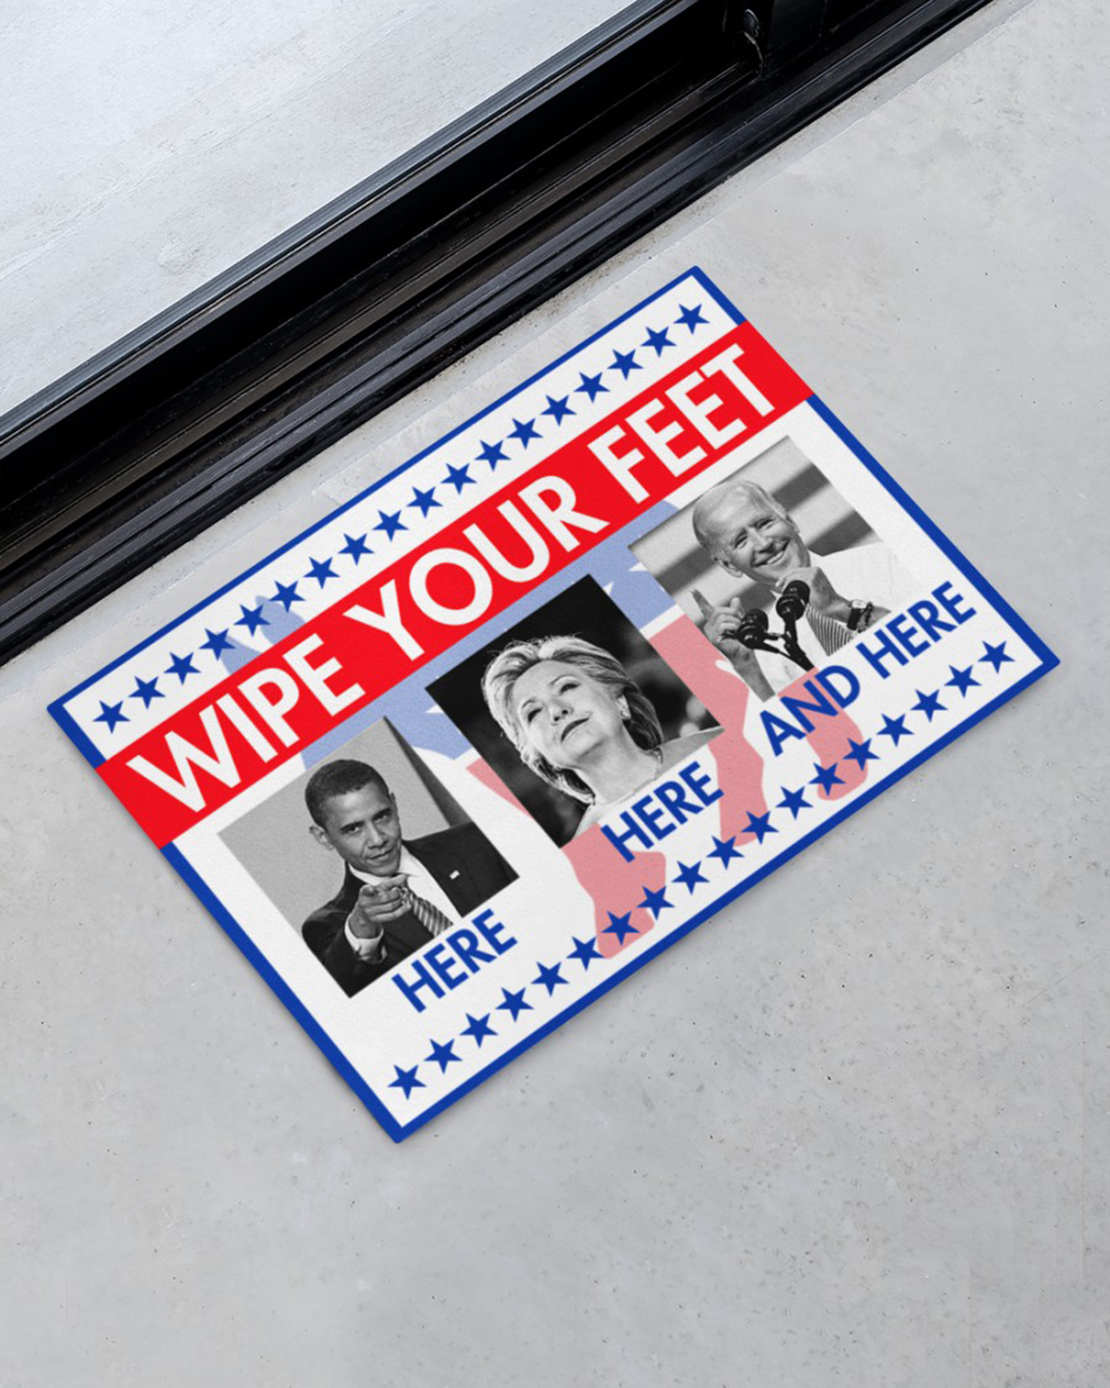 Barrack Obama Hillary Clinton Joe Biden Wipe your feet here here and here doormat - Picture 2